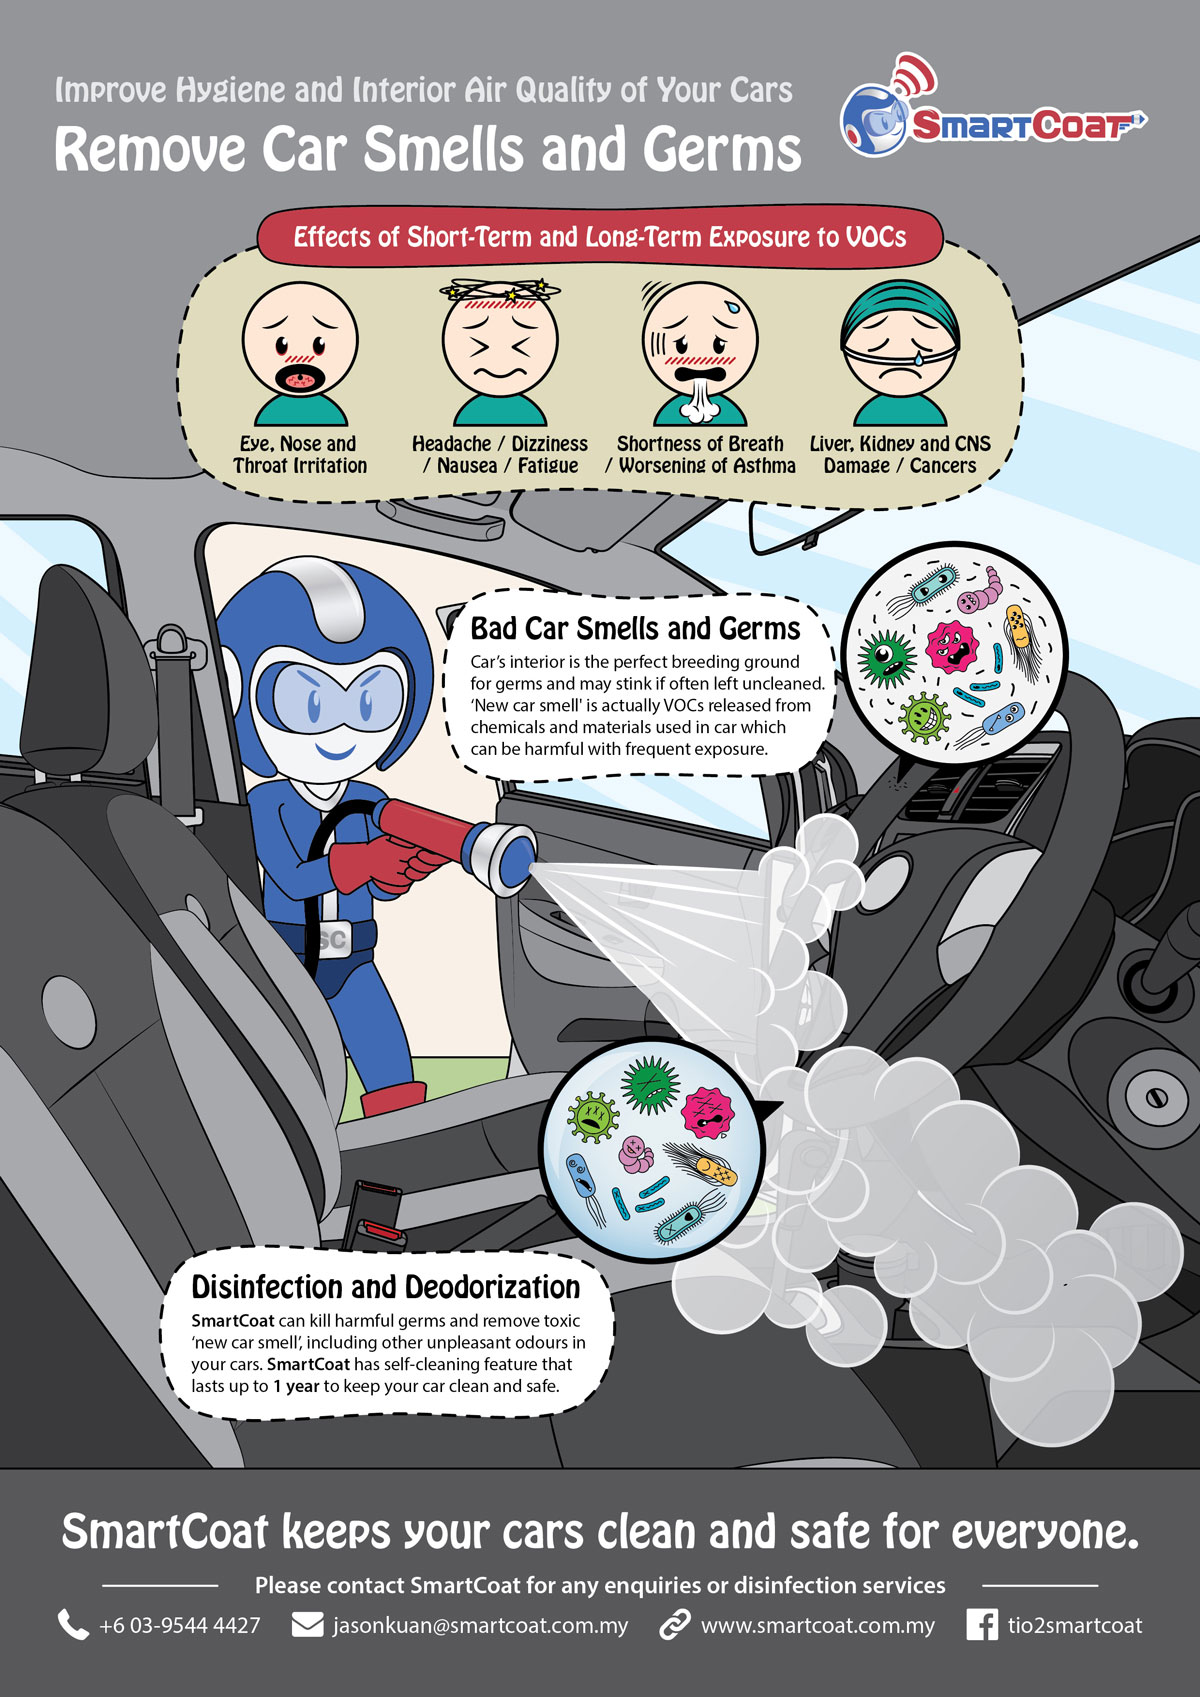 SmartCoat Removes Car Smells and Germs Poster Design 06